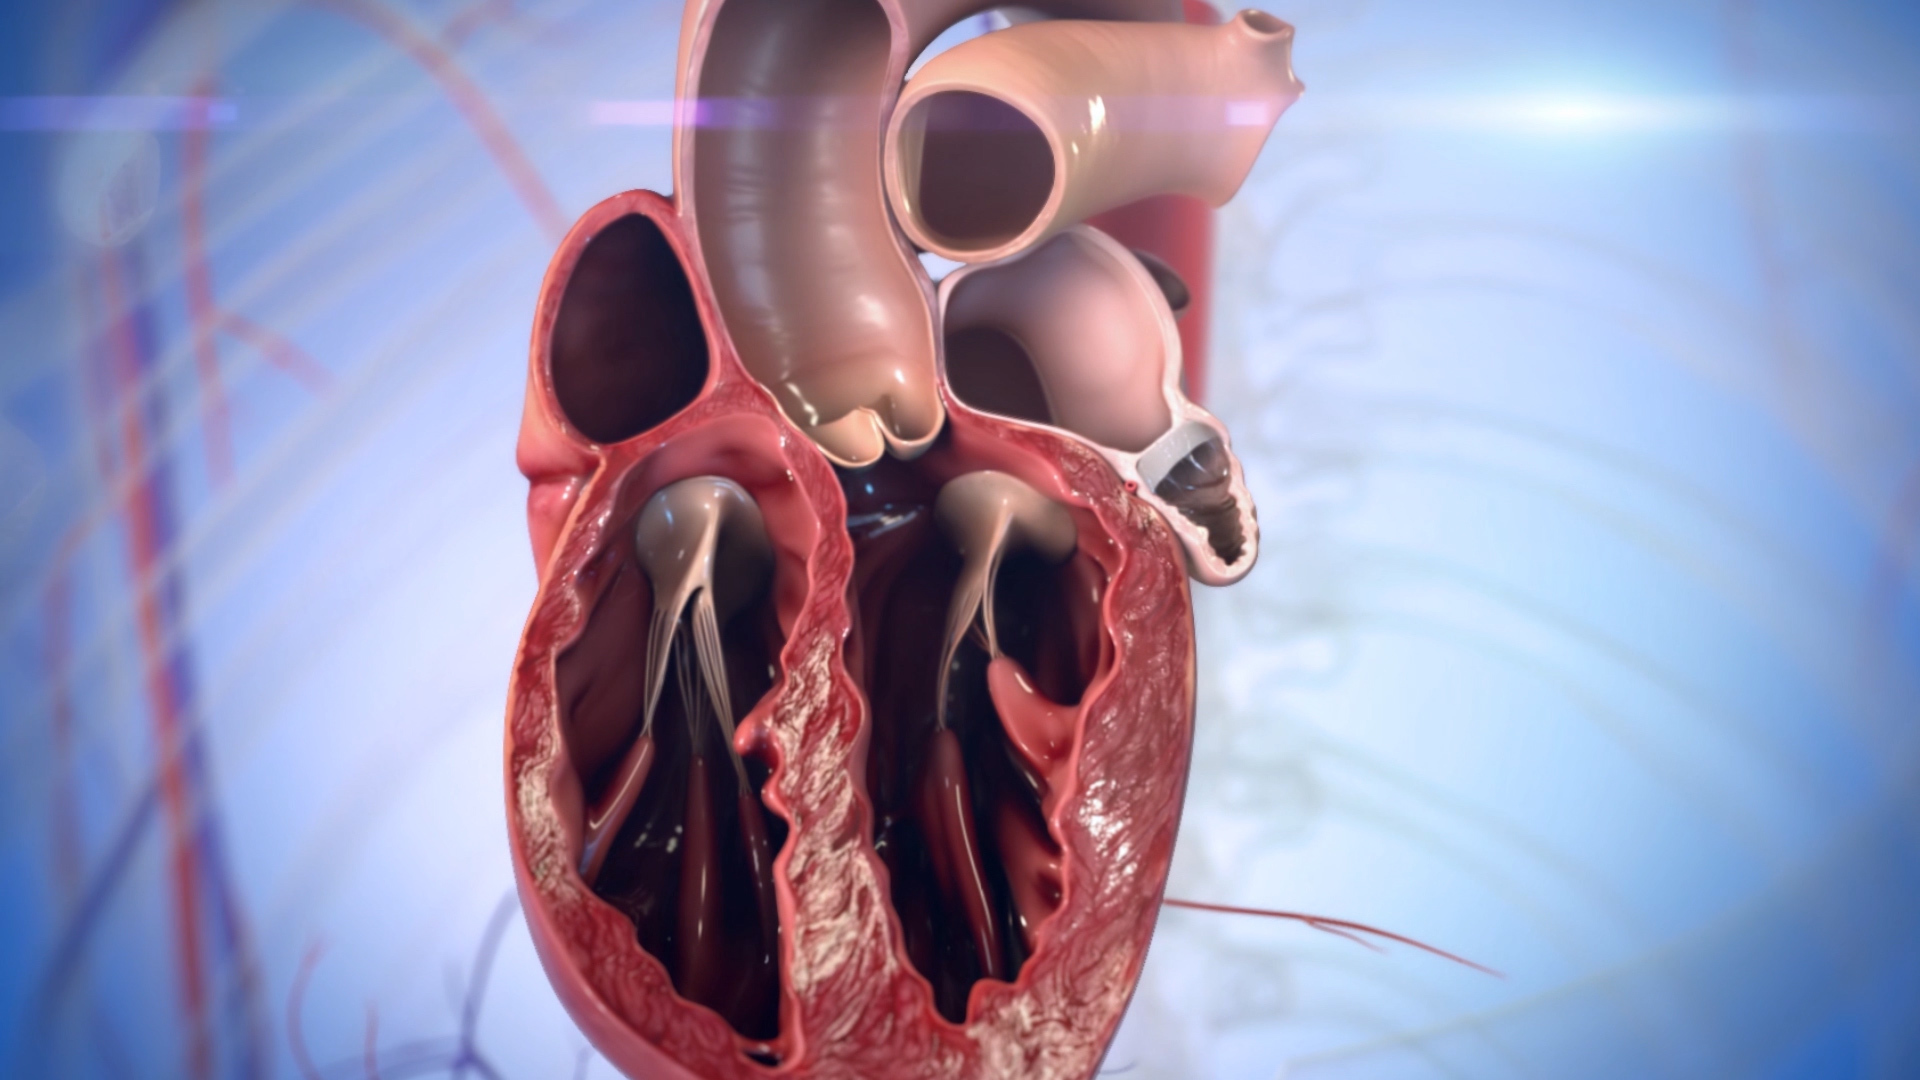 Minimally Invasive Procedure Reduces Risk of Stroke in those with Atrial Fibrillation